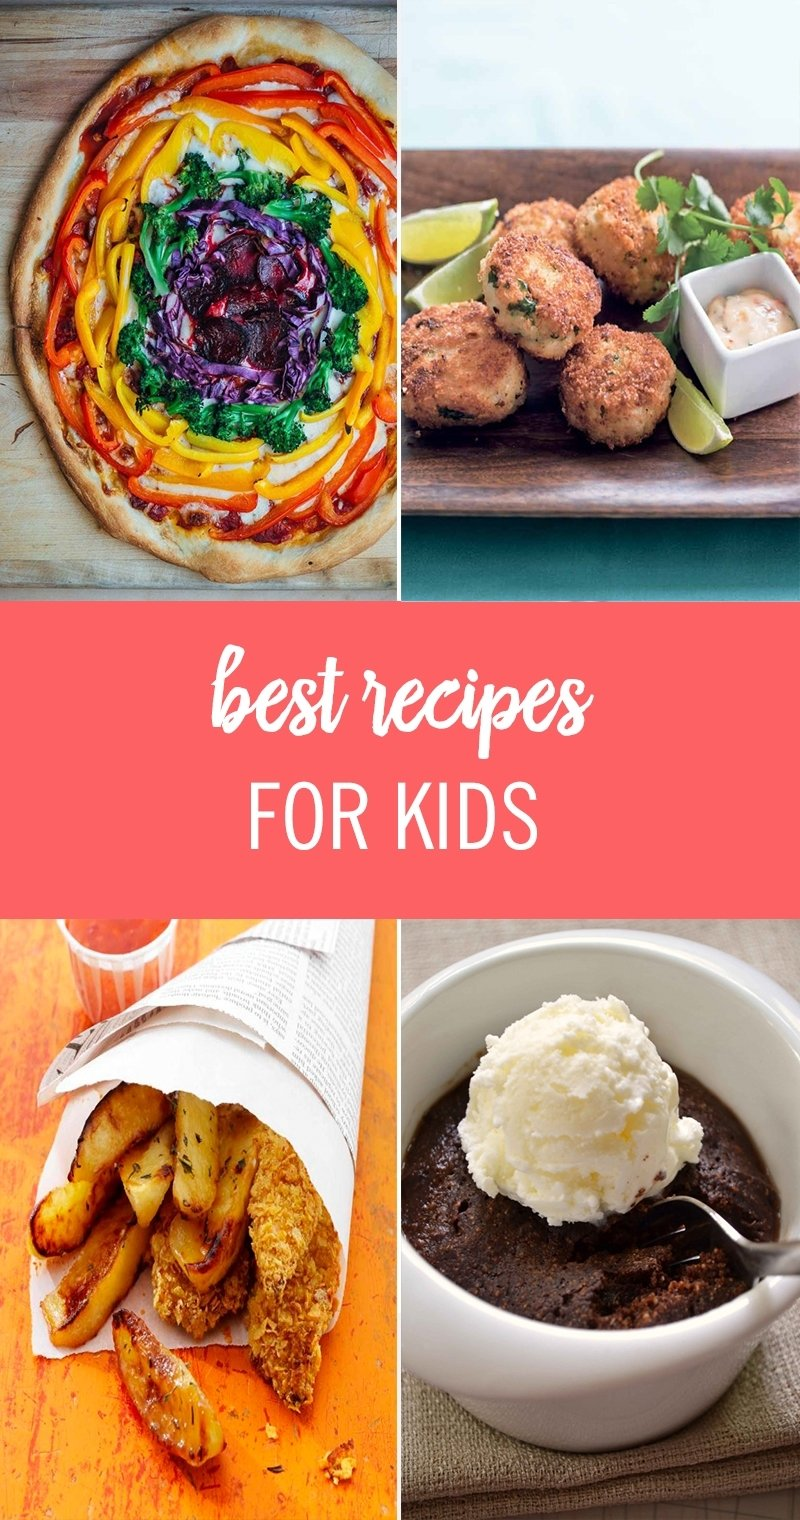 10 Ideal School Lunch Ideas For Picky Kids cooking for kids 50 best recipes for kids and picky eaters 18 2020